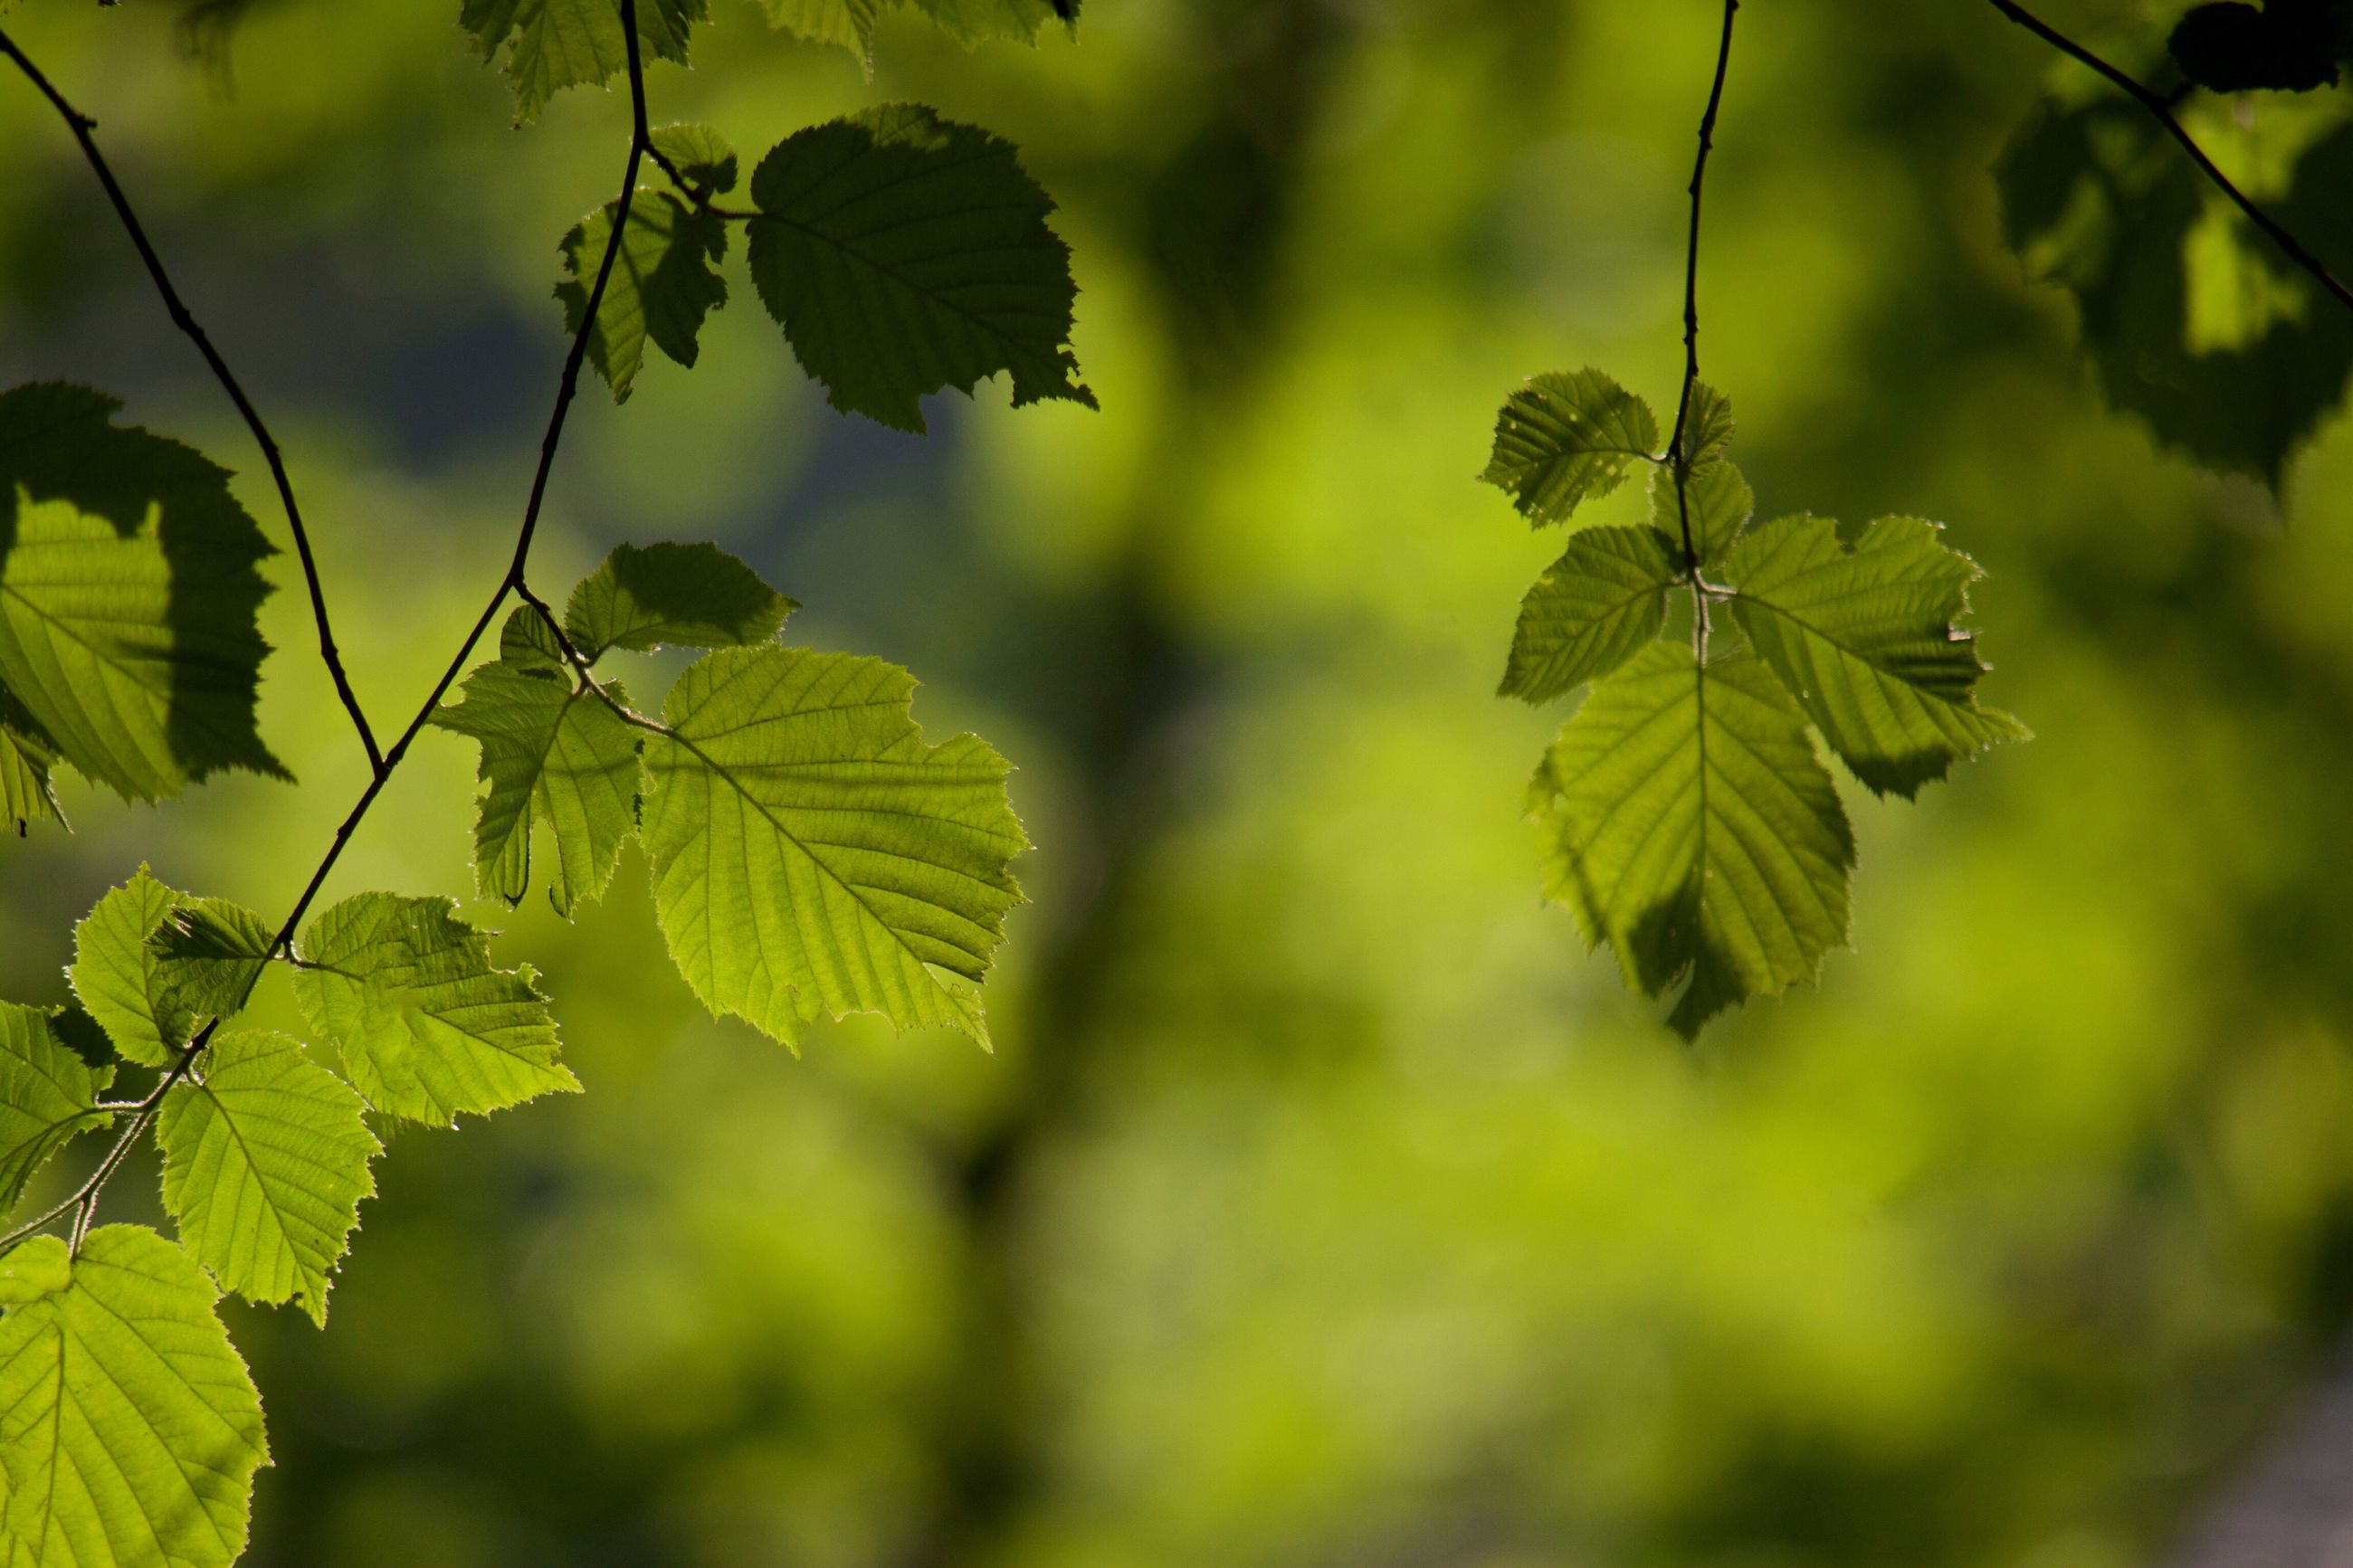 leaf, green color, growth, focus on foreground, close-up, plant, nature, branch, leaves, selective focus, leaf vein, tree, tranquility, beauty in nature, outdoors, day, forest, no people, twig, green